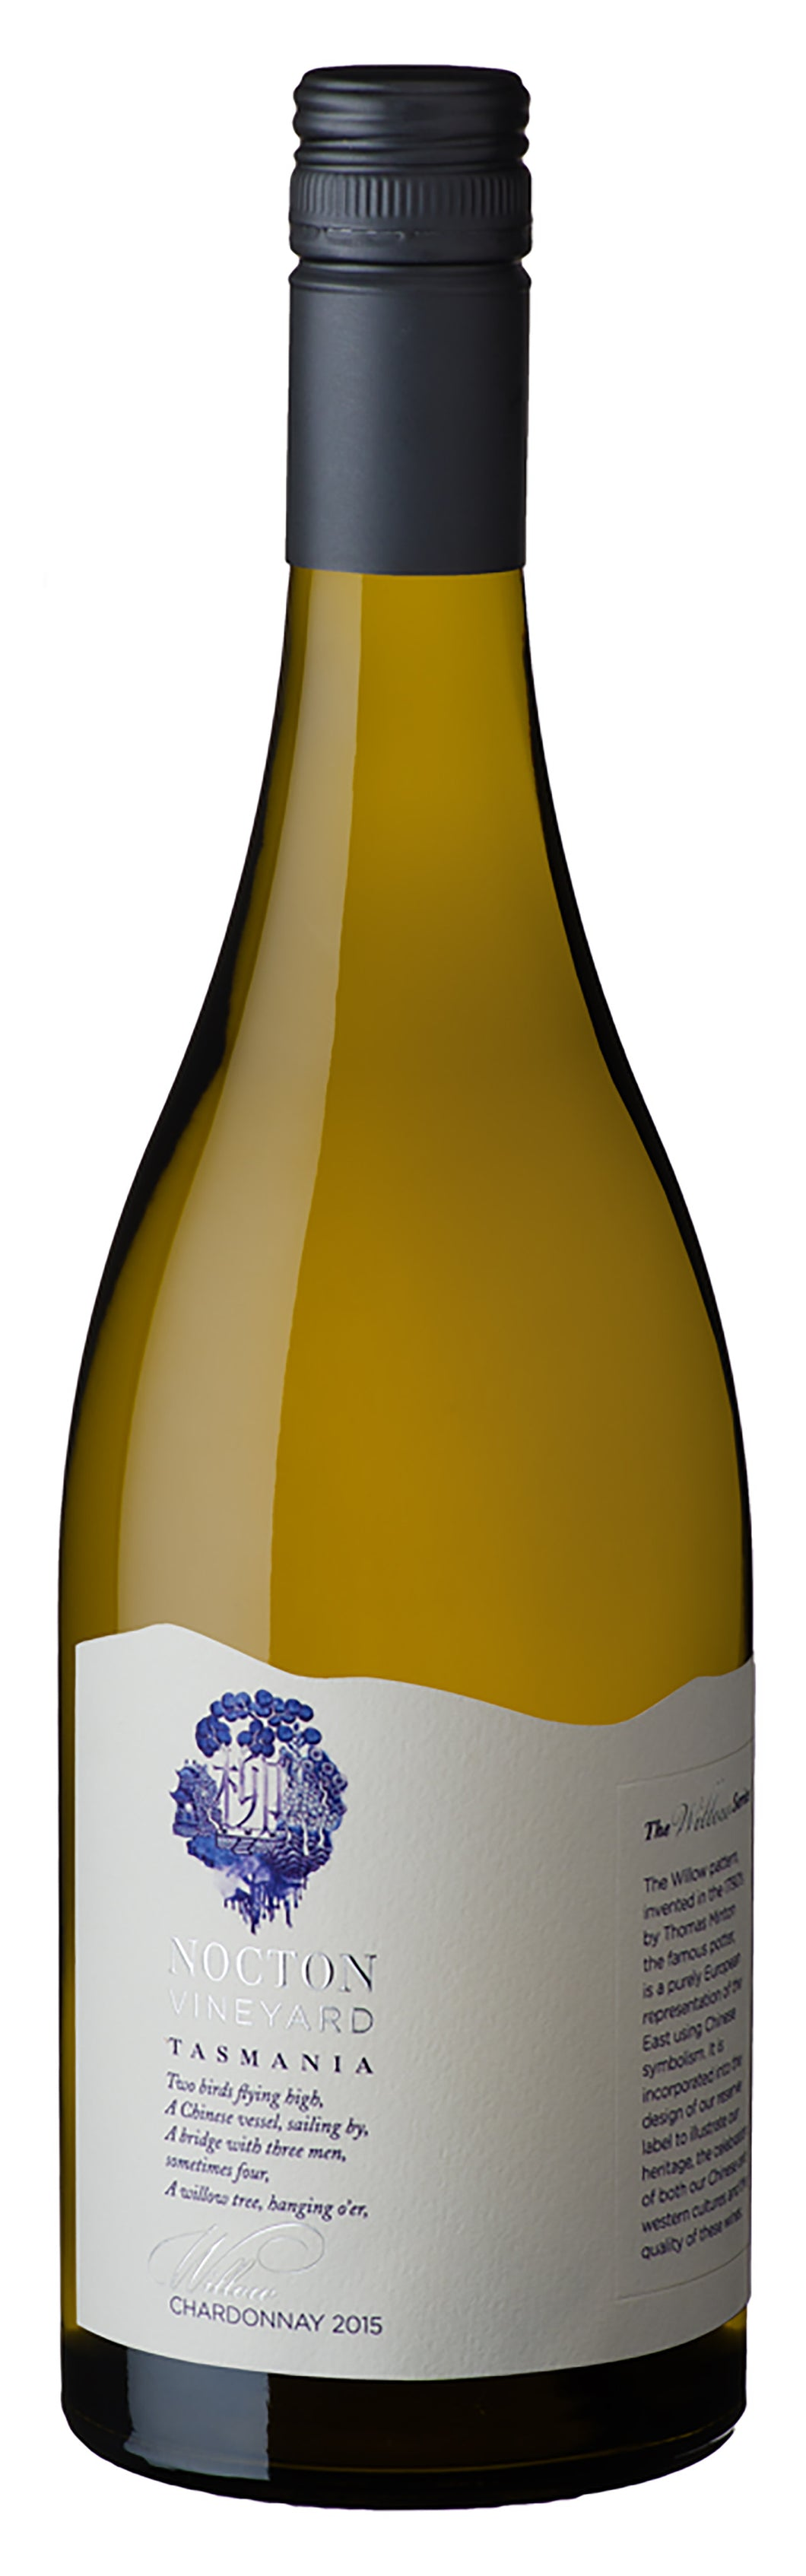 Nocton Willow Series Reserve Chardonnay 2015 - Network Wines